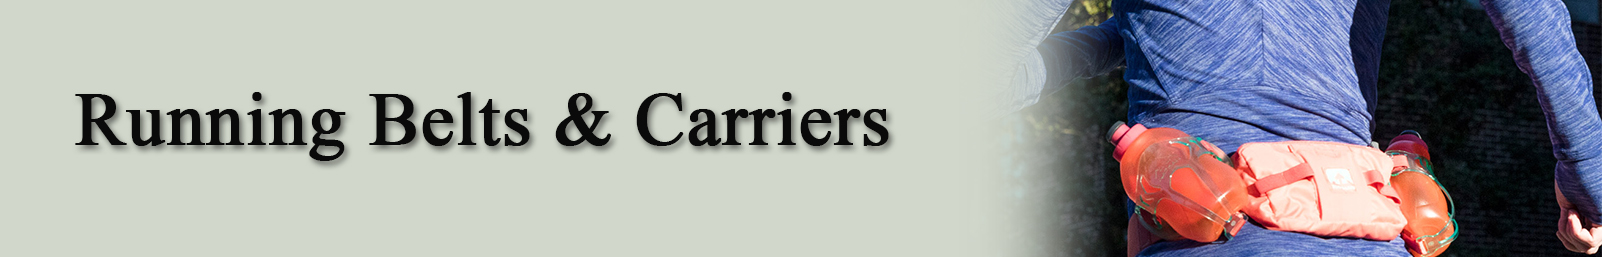 Belts & Carriers